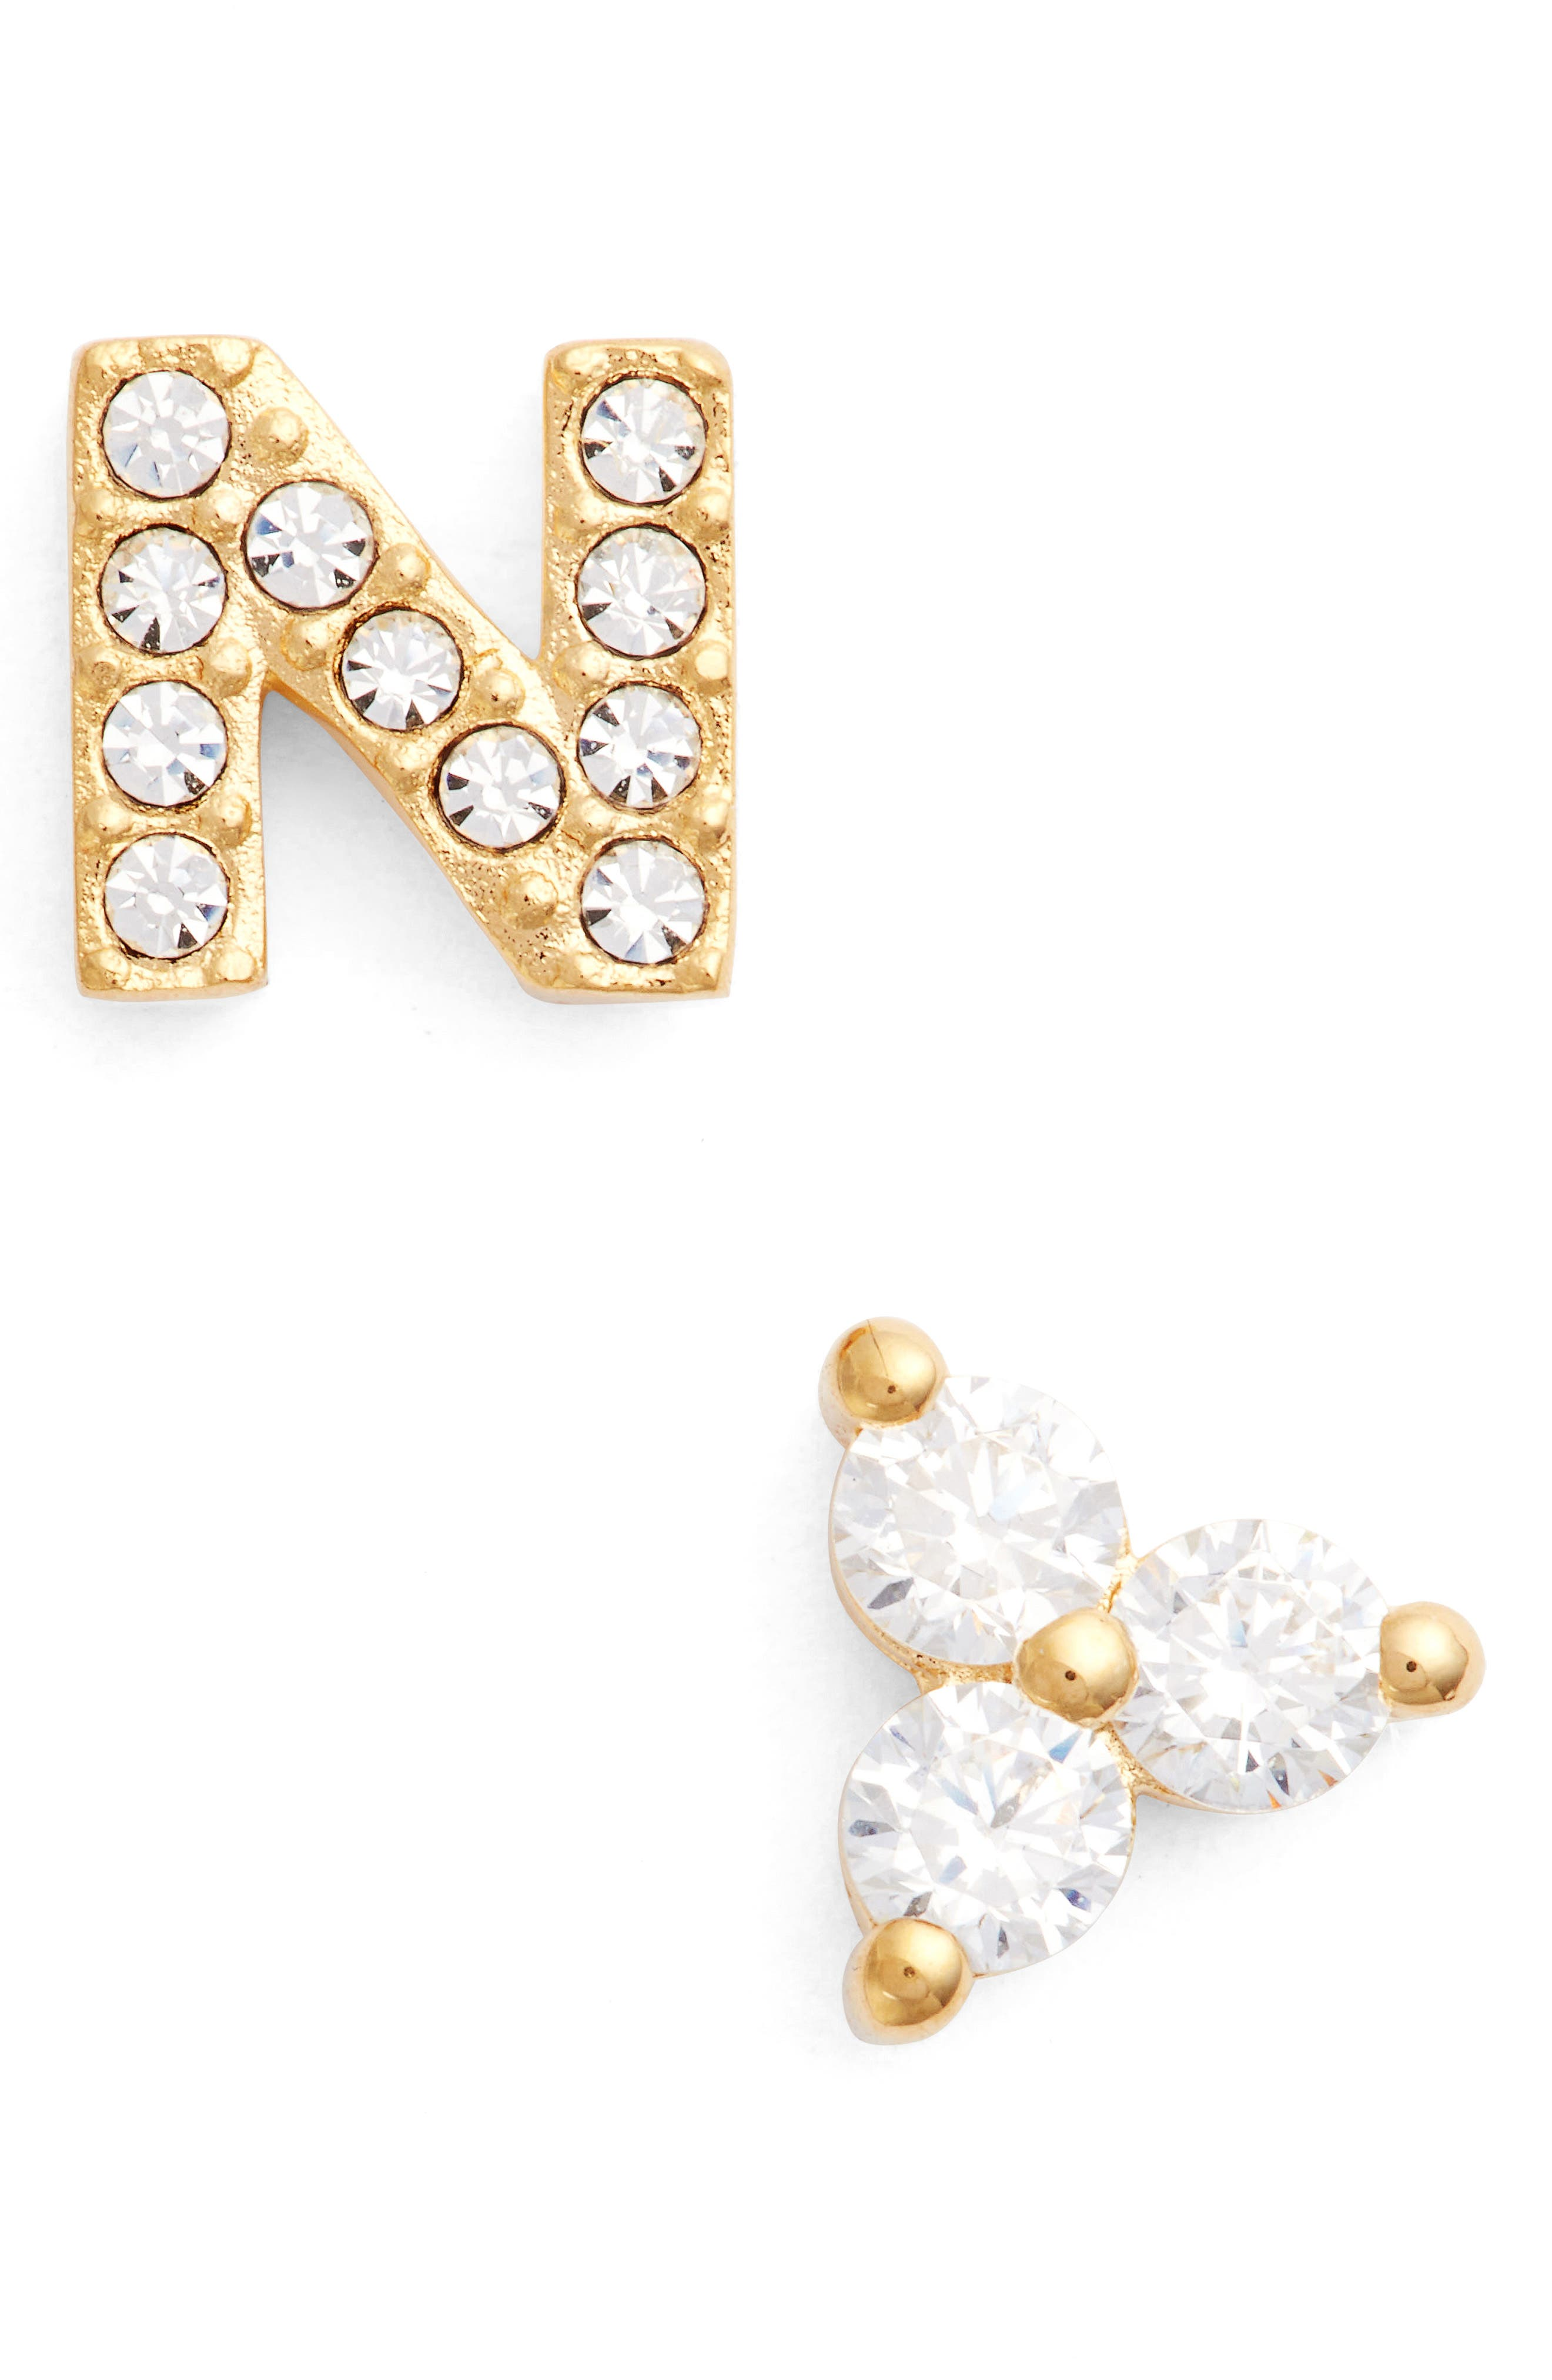 Initial Mismatched Stud Earrings,                         Main,                         color, GOLD - N